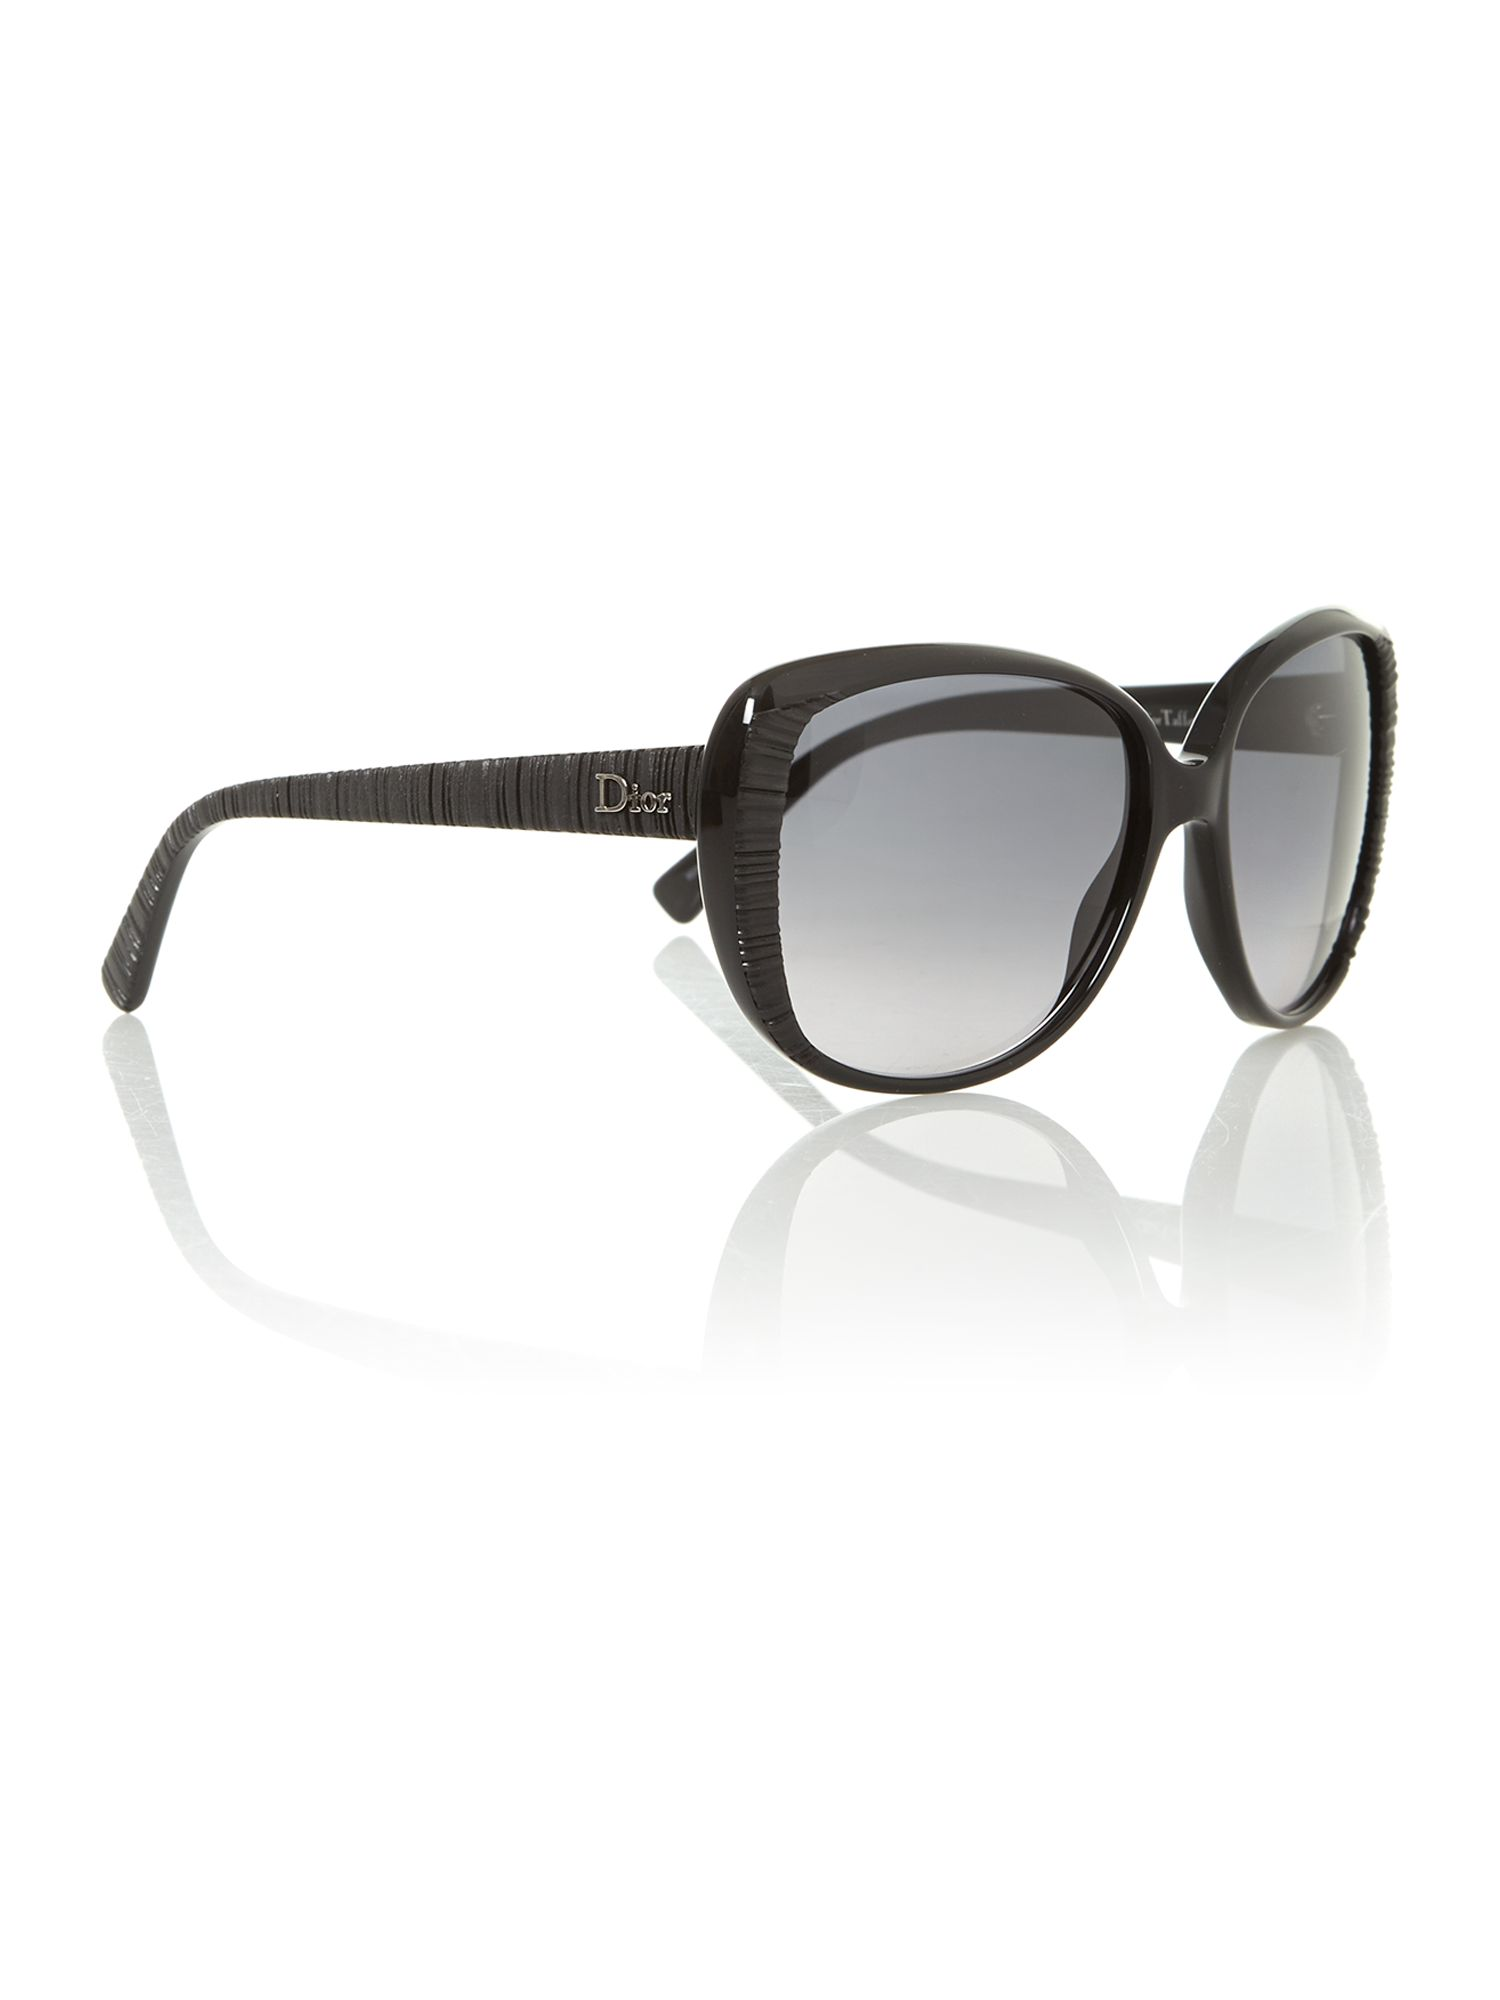 Ladies TAFFETAS2 black square sunglasses